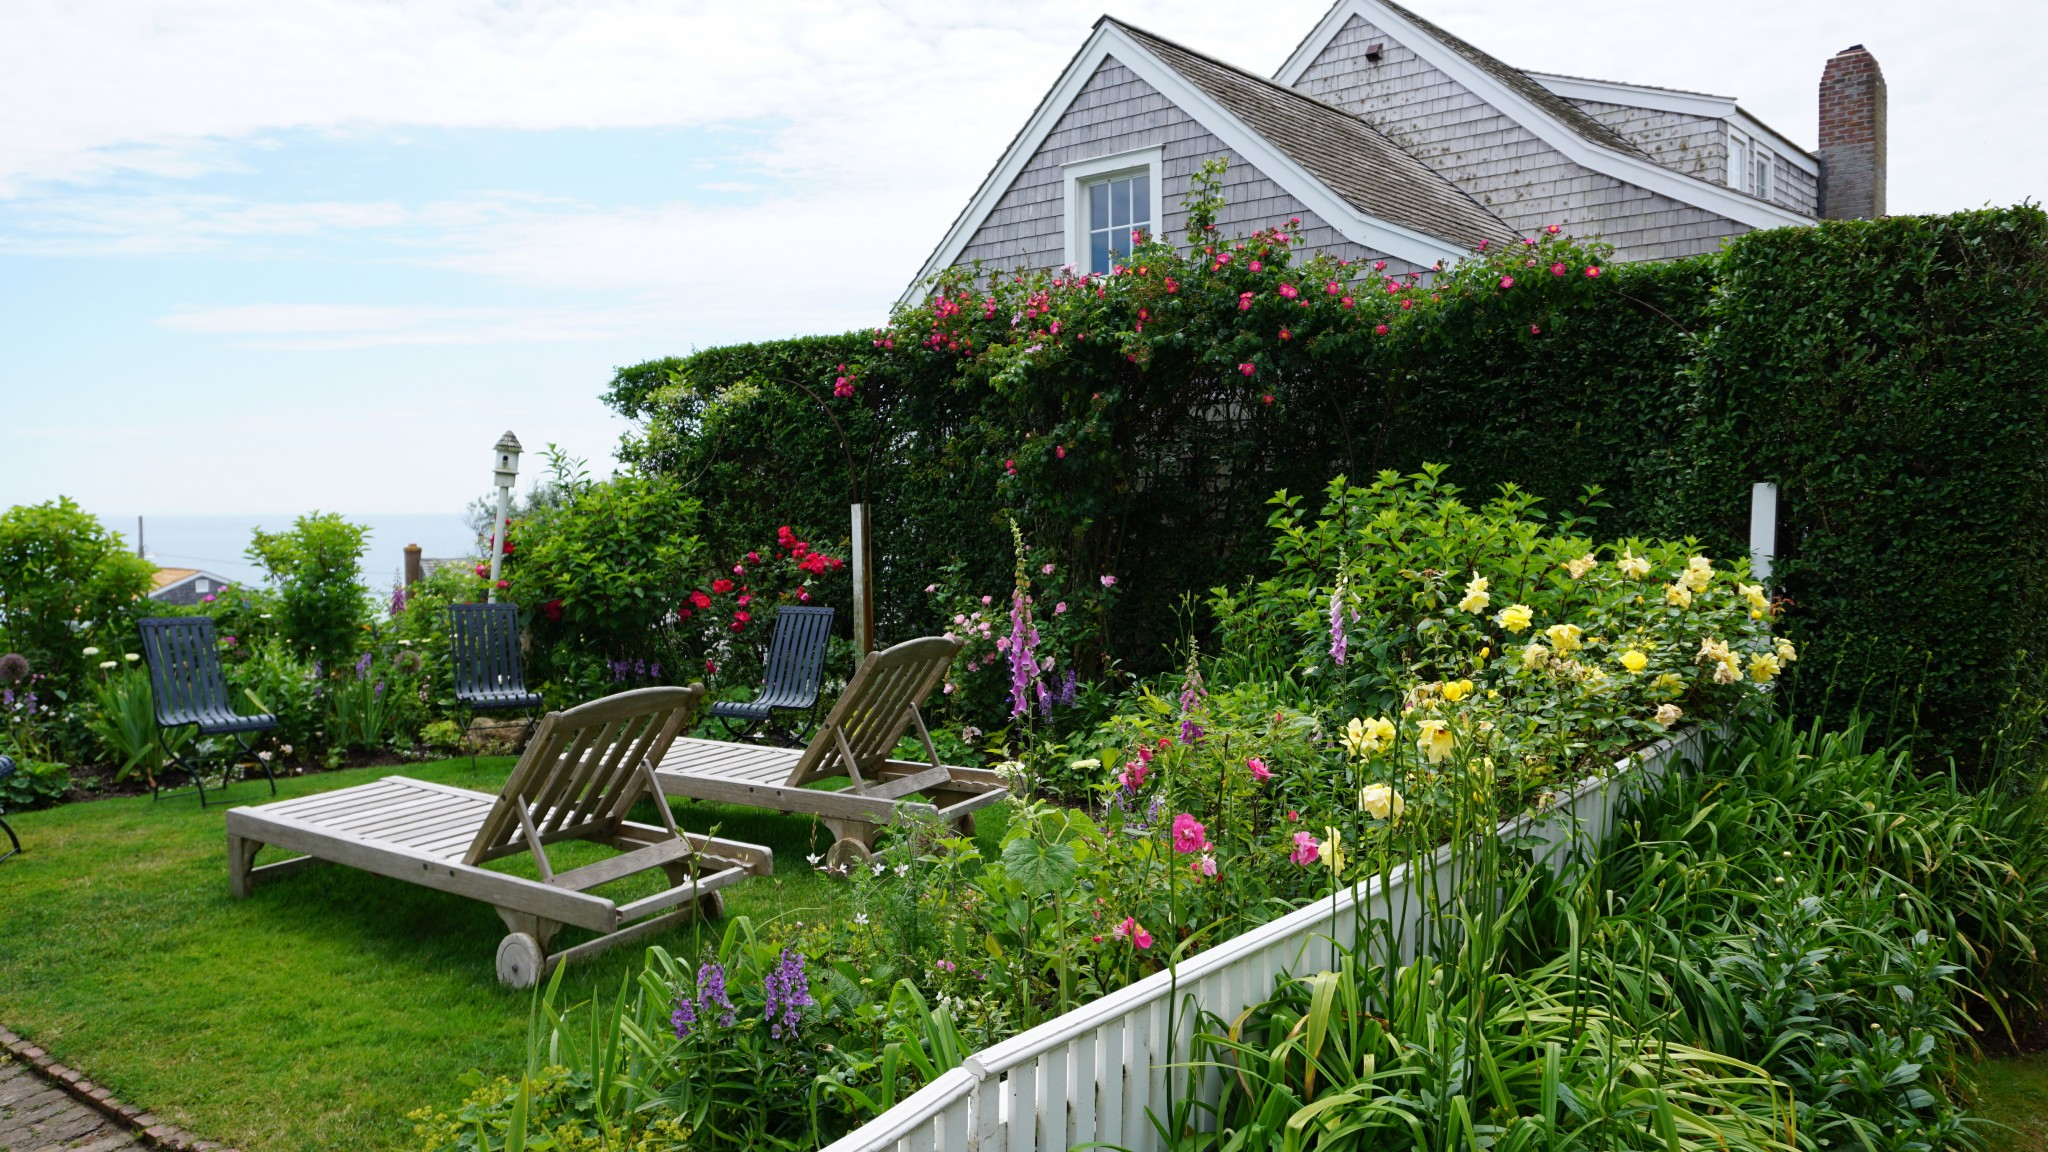 sconset, siasconset, nantucket, bluff walk, the-alyst.com